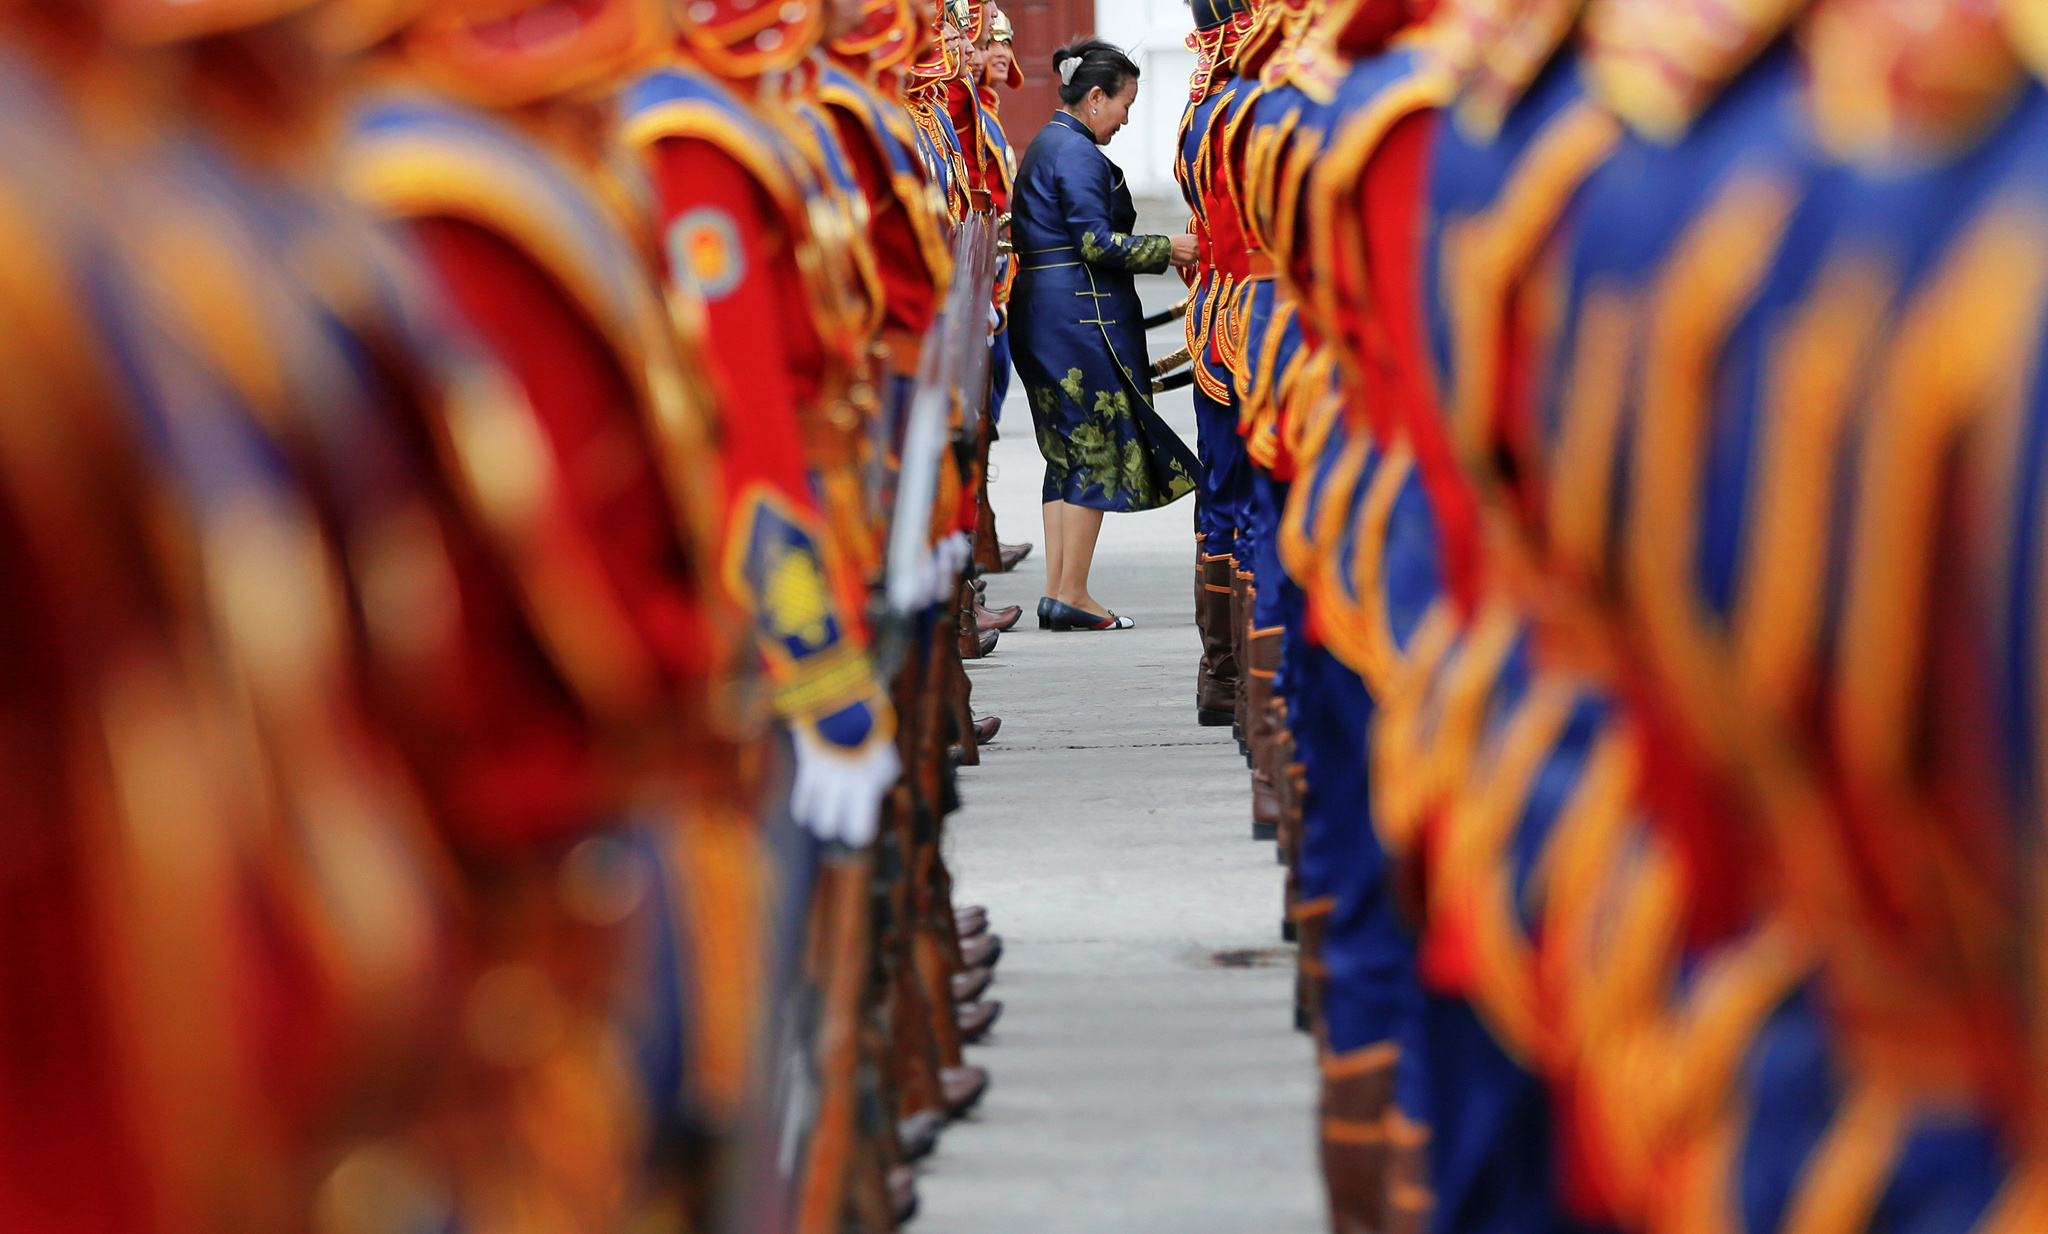 A woman checks uniforms of honour guards before a welcoming ceremony for Japan's Prime Minister Shinzo Abe at Genghis Square in central Ulaanbaatar, Mongolia, July 14, 2016. REUTERS/Damir Sagolj